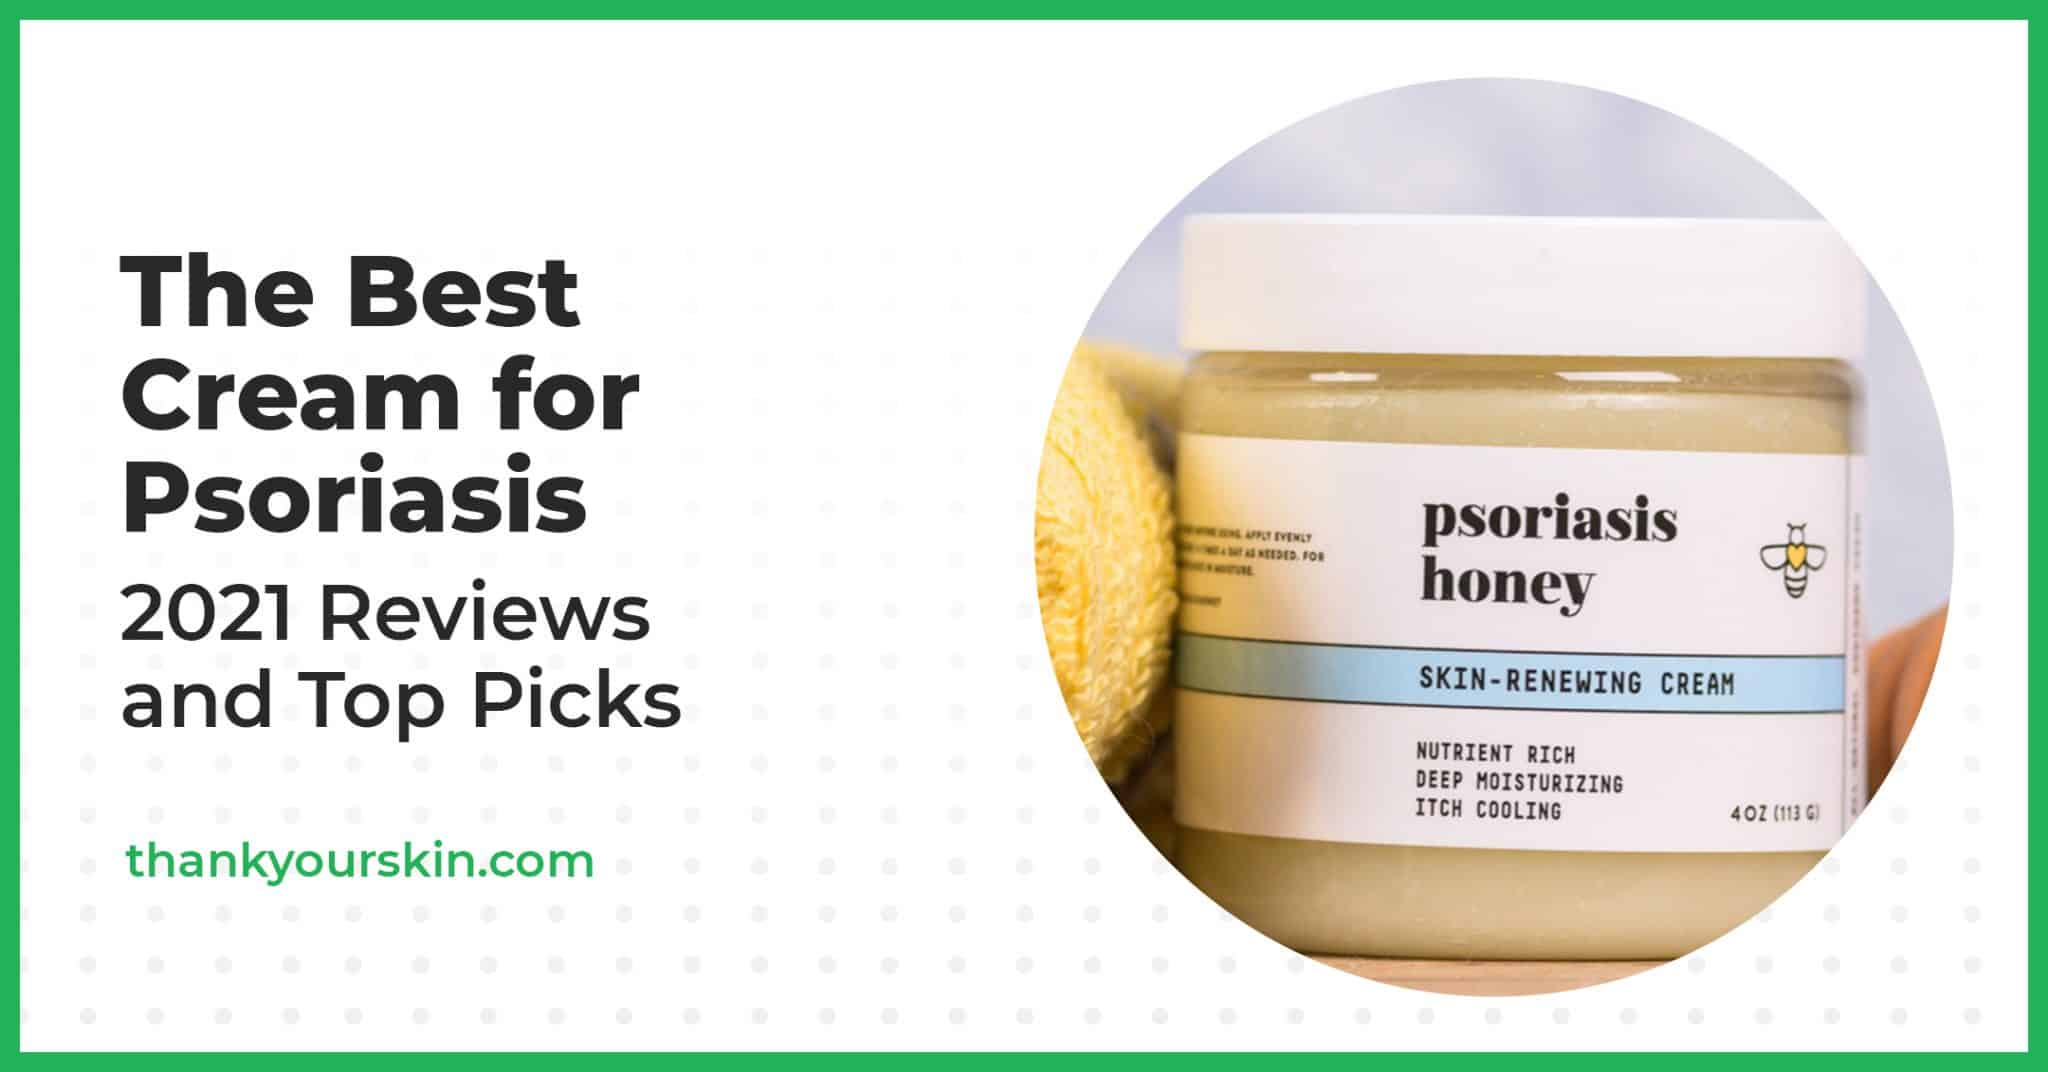 The Best Cream for Psoriasis – 2021 Reviews and Top Picks